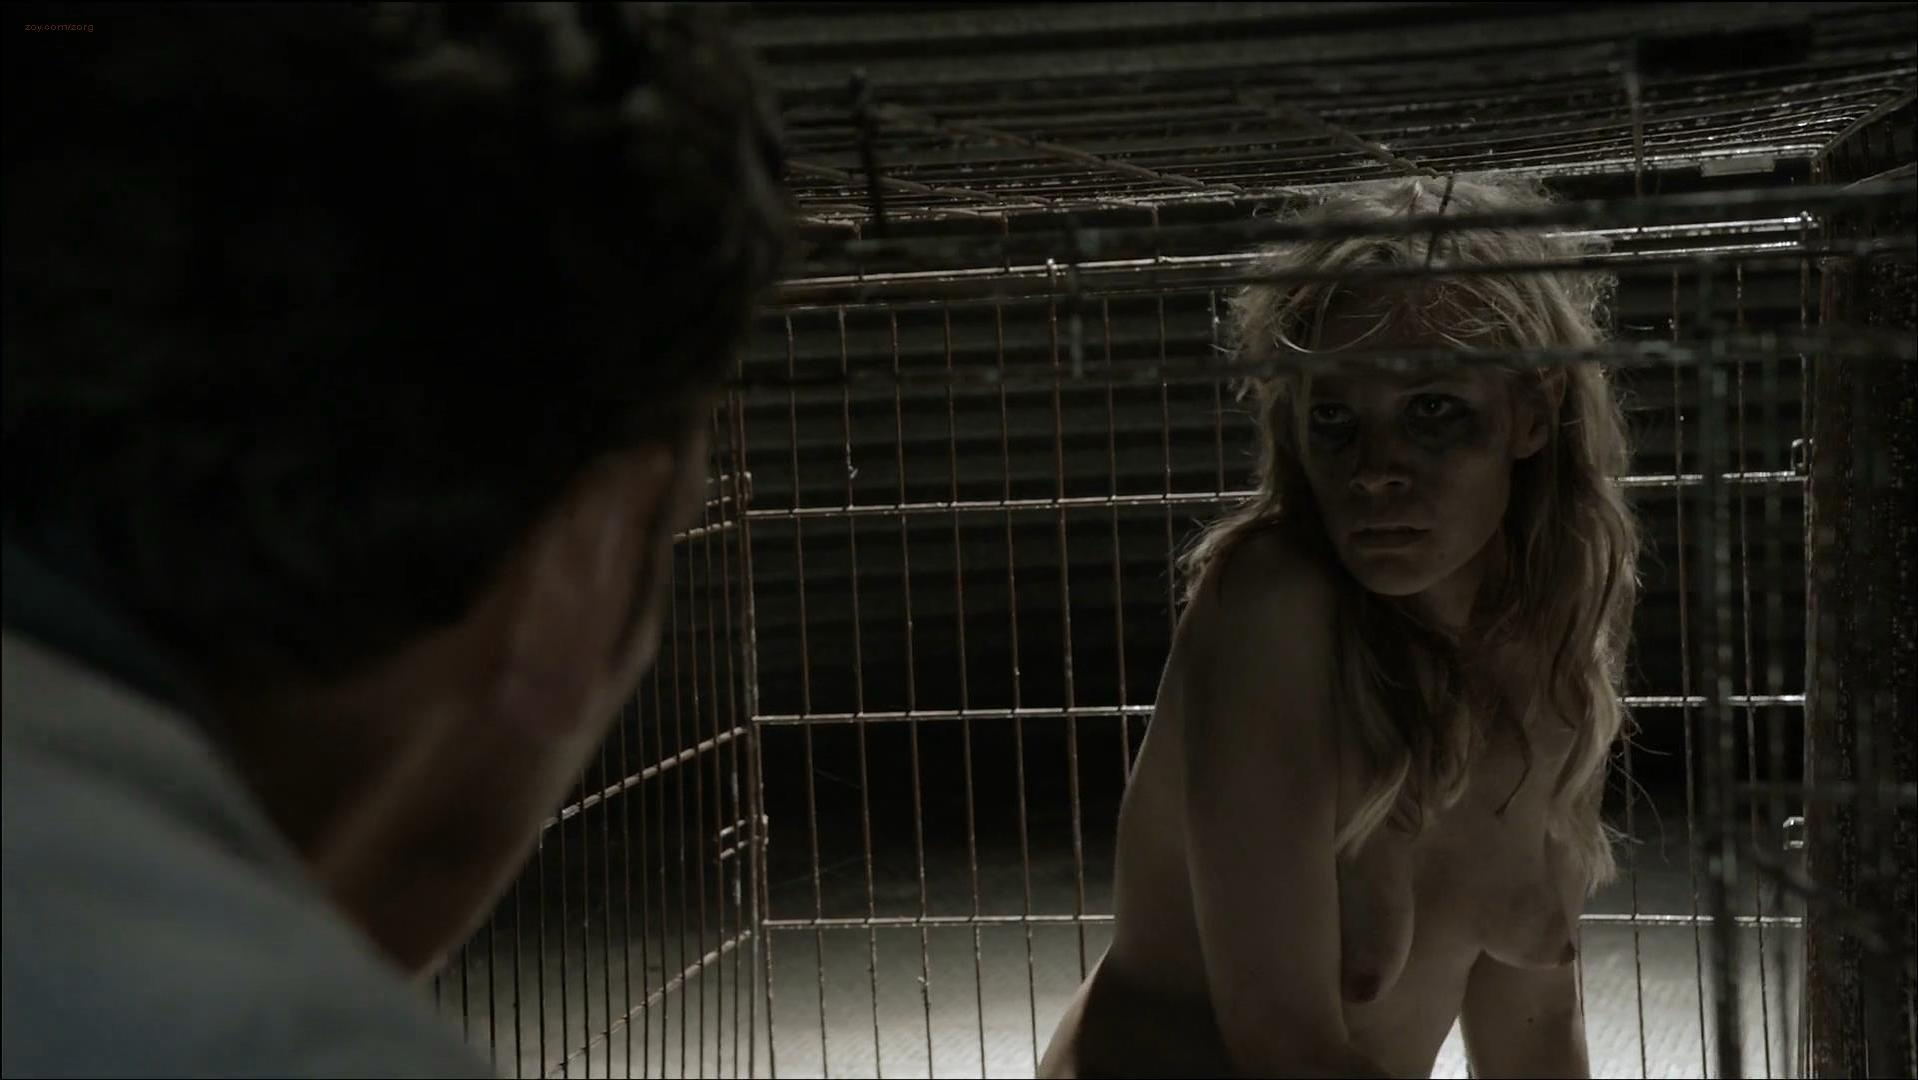 Pell James nude - Pawn Shop Chronicles (2013)